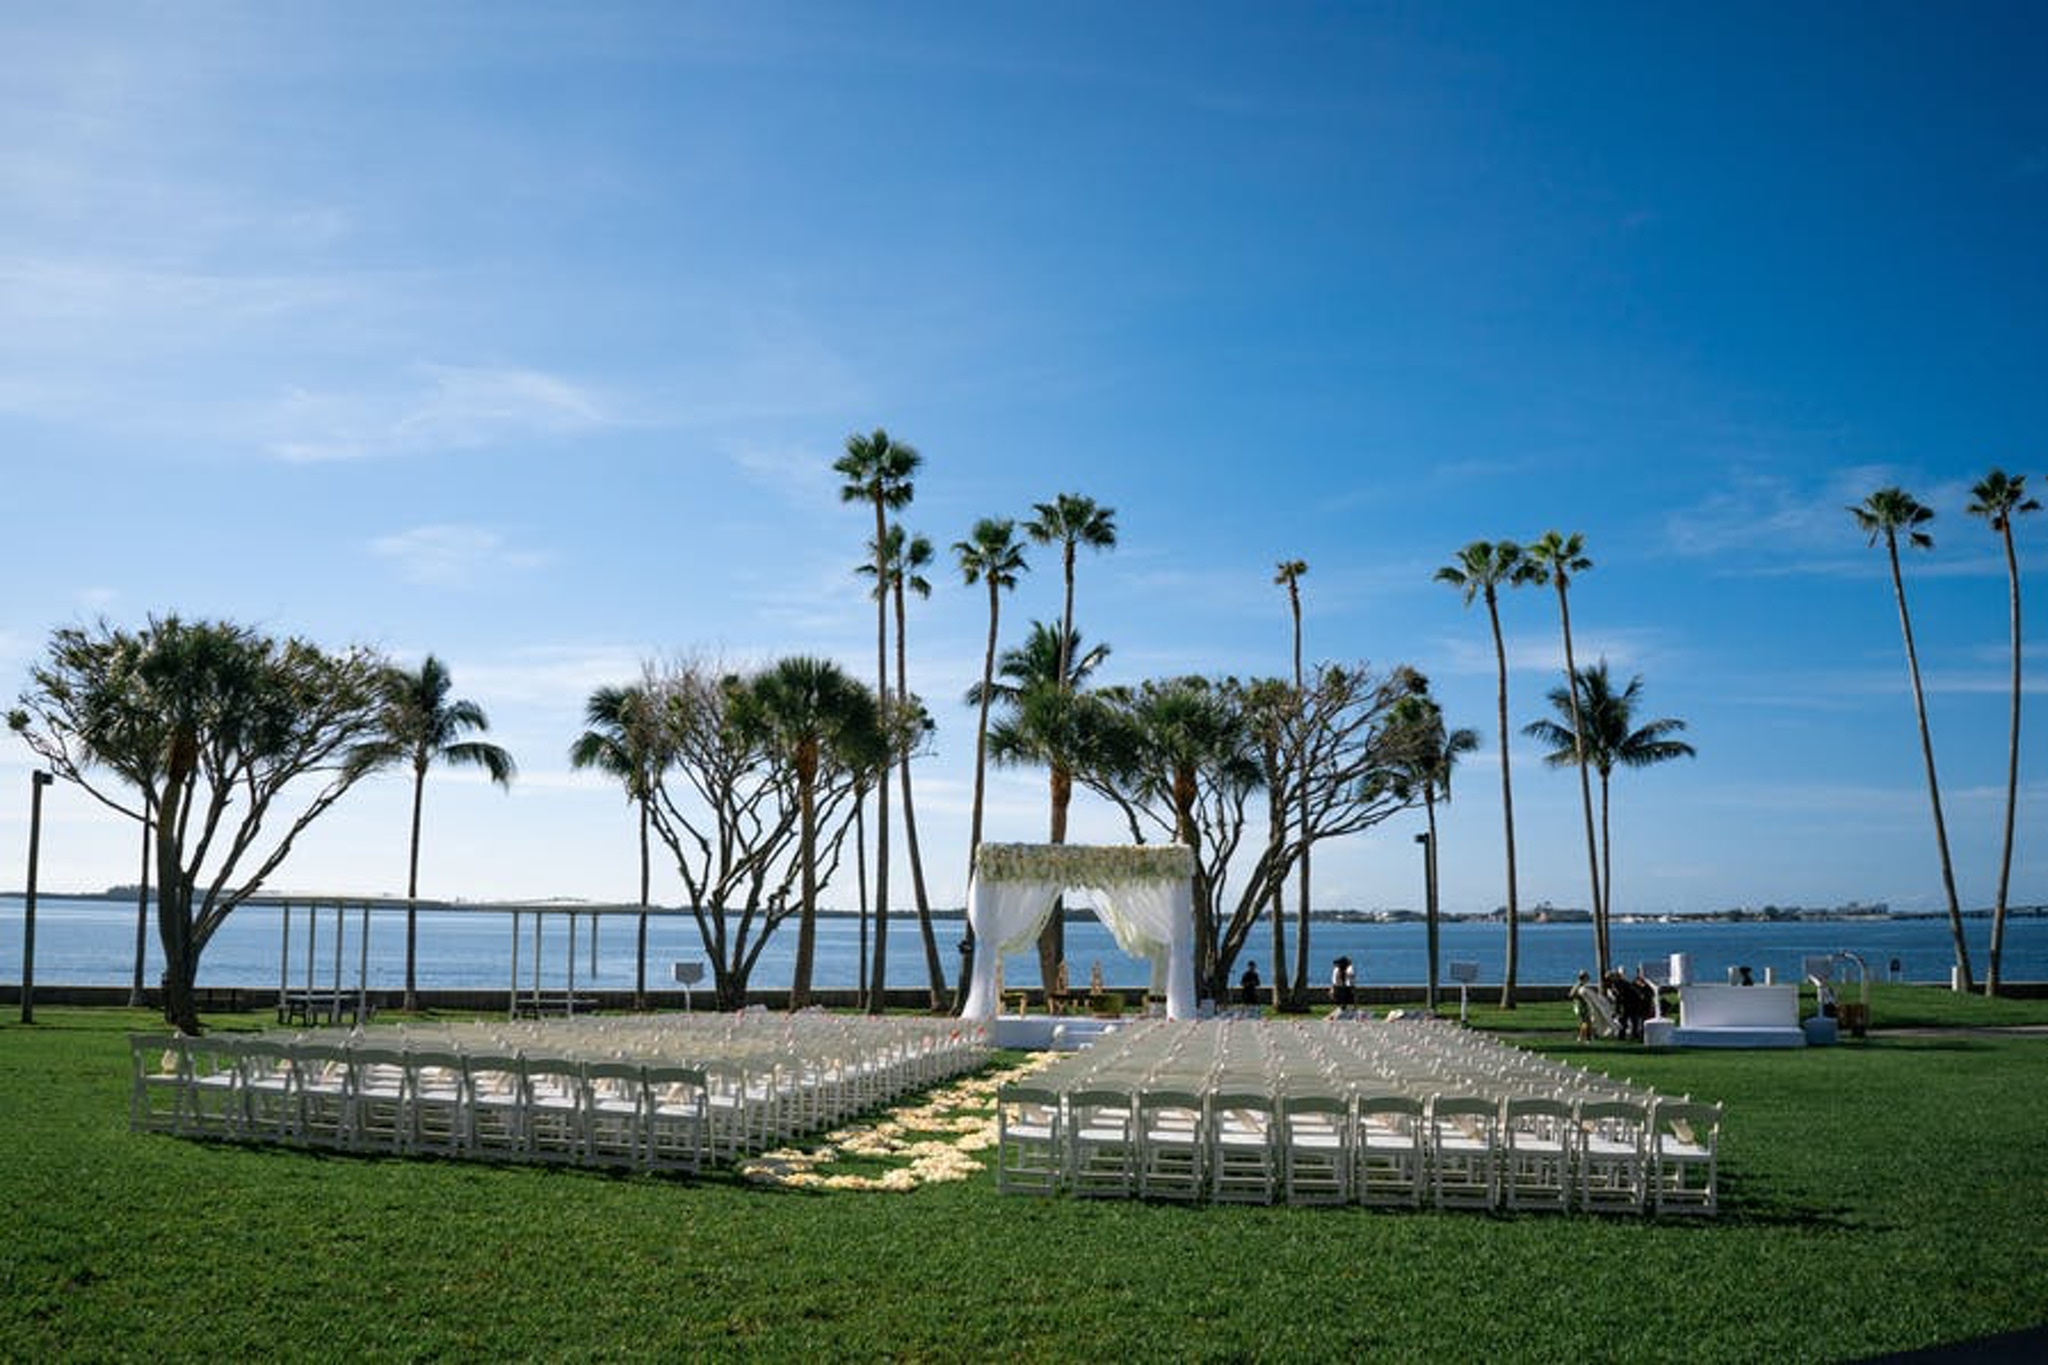 Wedding in front of palm trees and beach